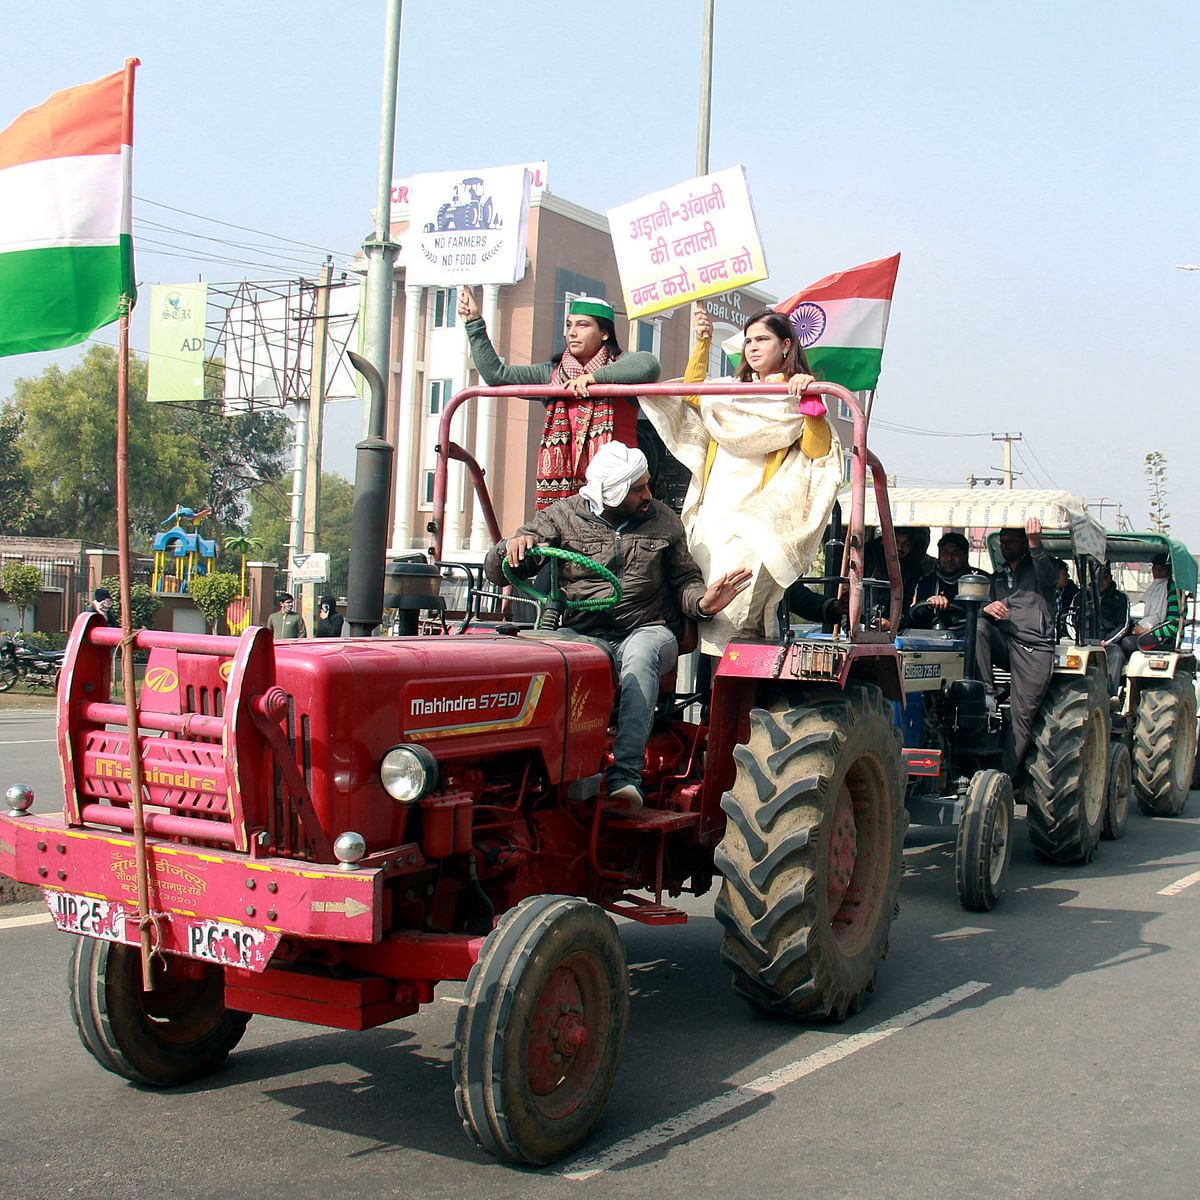 About 25,000 tractors from UP, Uttarakhand to participate in 'kisan parade': Rakesh Tikait